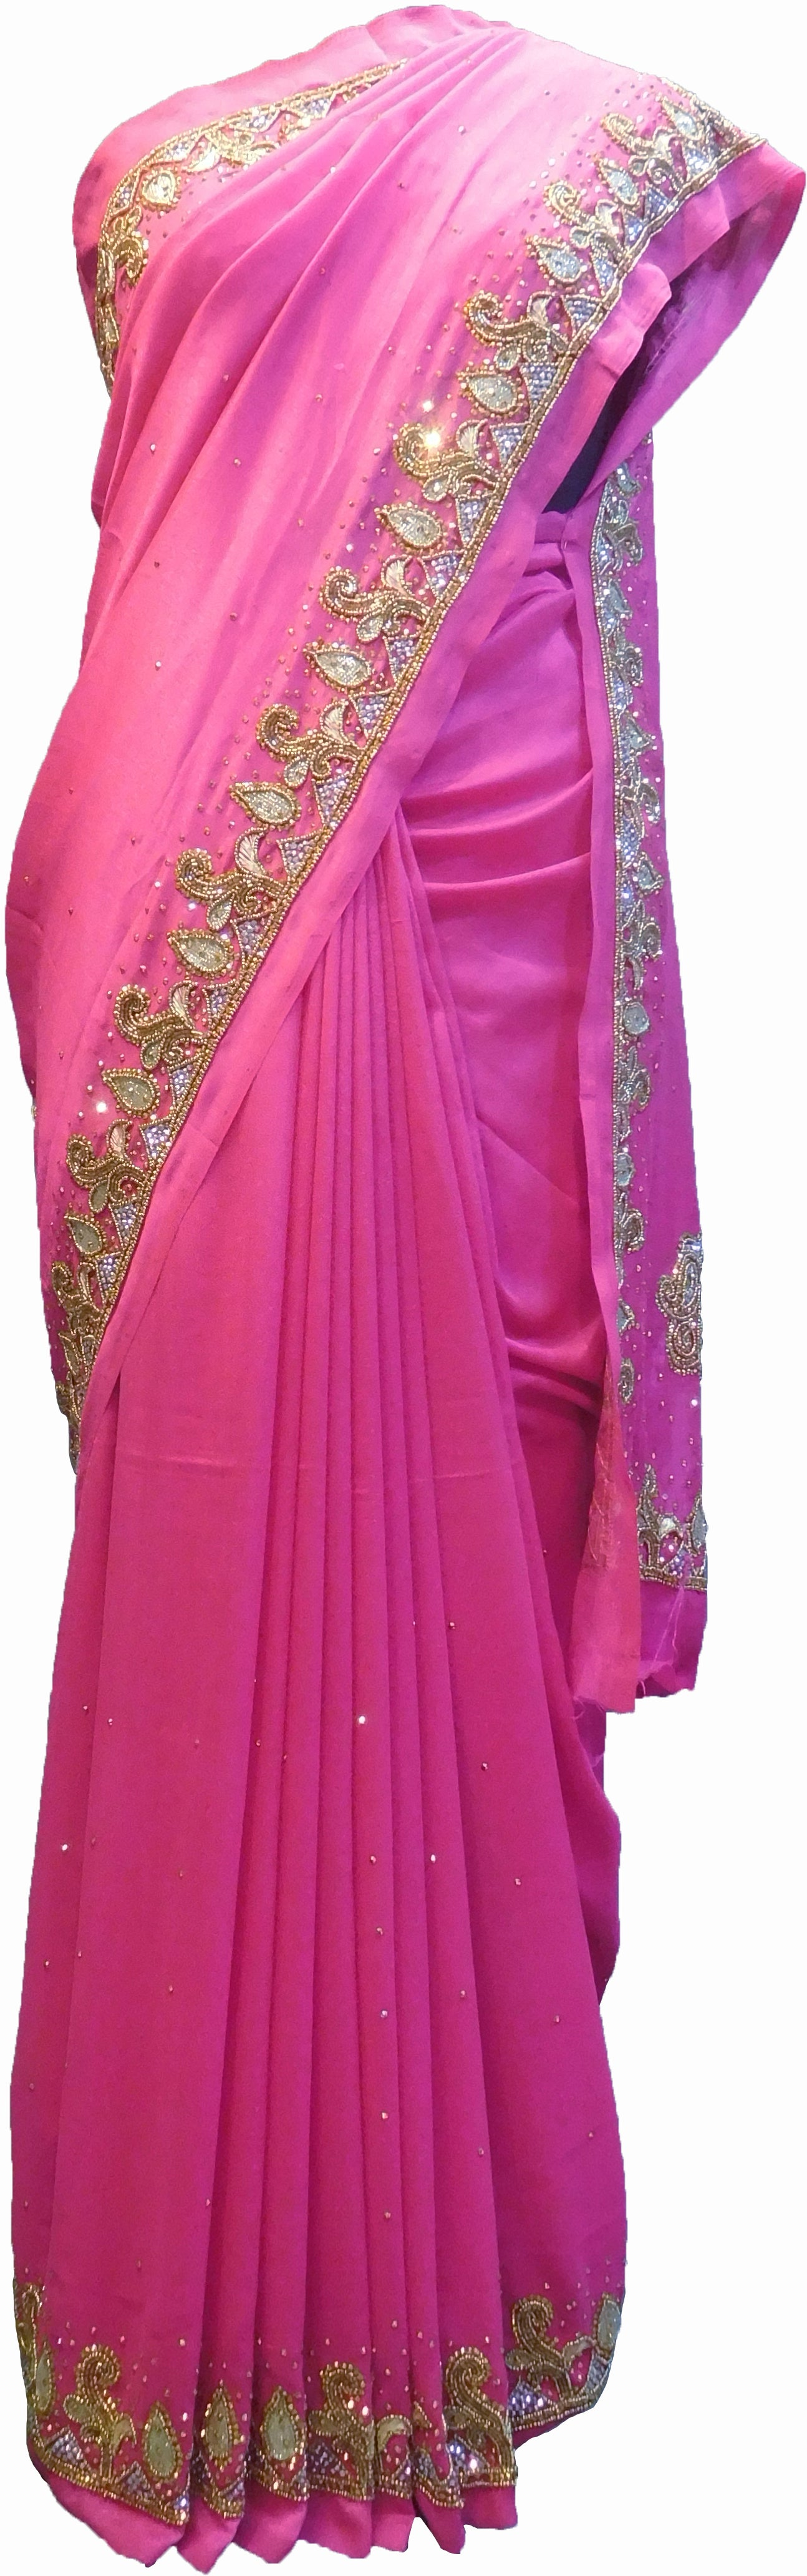 SMSAREE Pink Designer Wedding Partywear Silk (Vichitra) Zari Cutdana Thread Beads & Stone Hand Embroidery Work Bridal Saree Sari With Blouse Piece F186